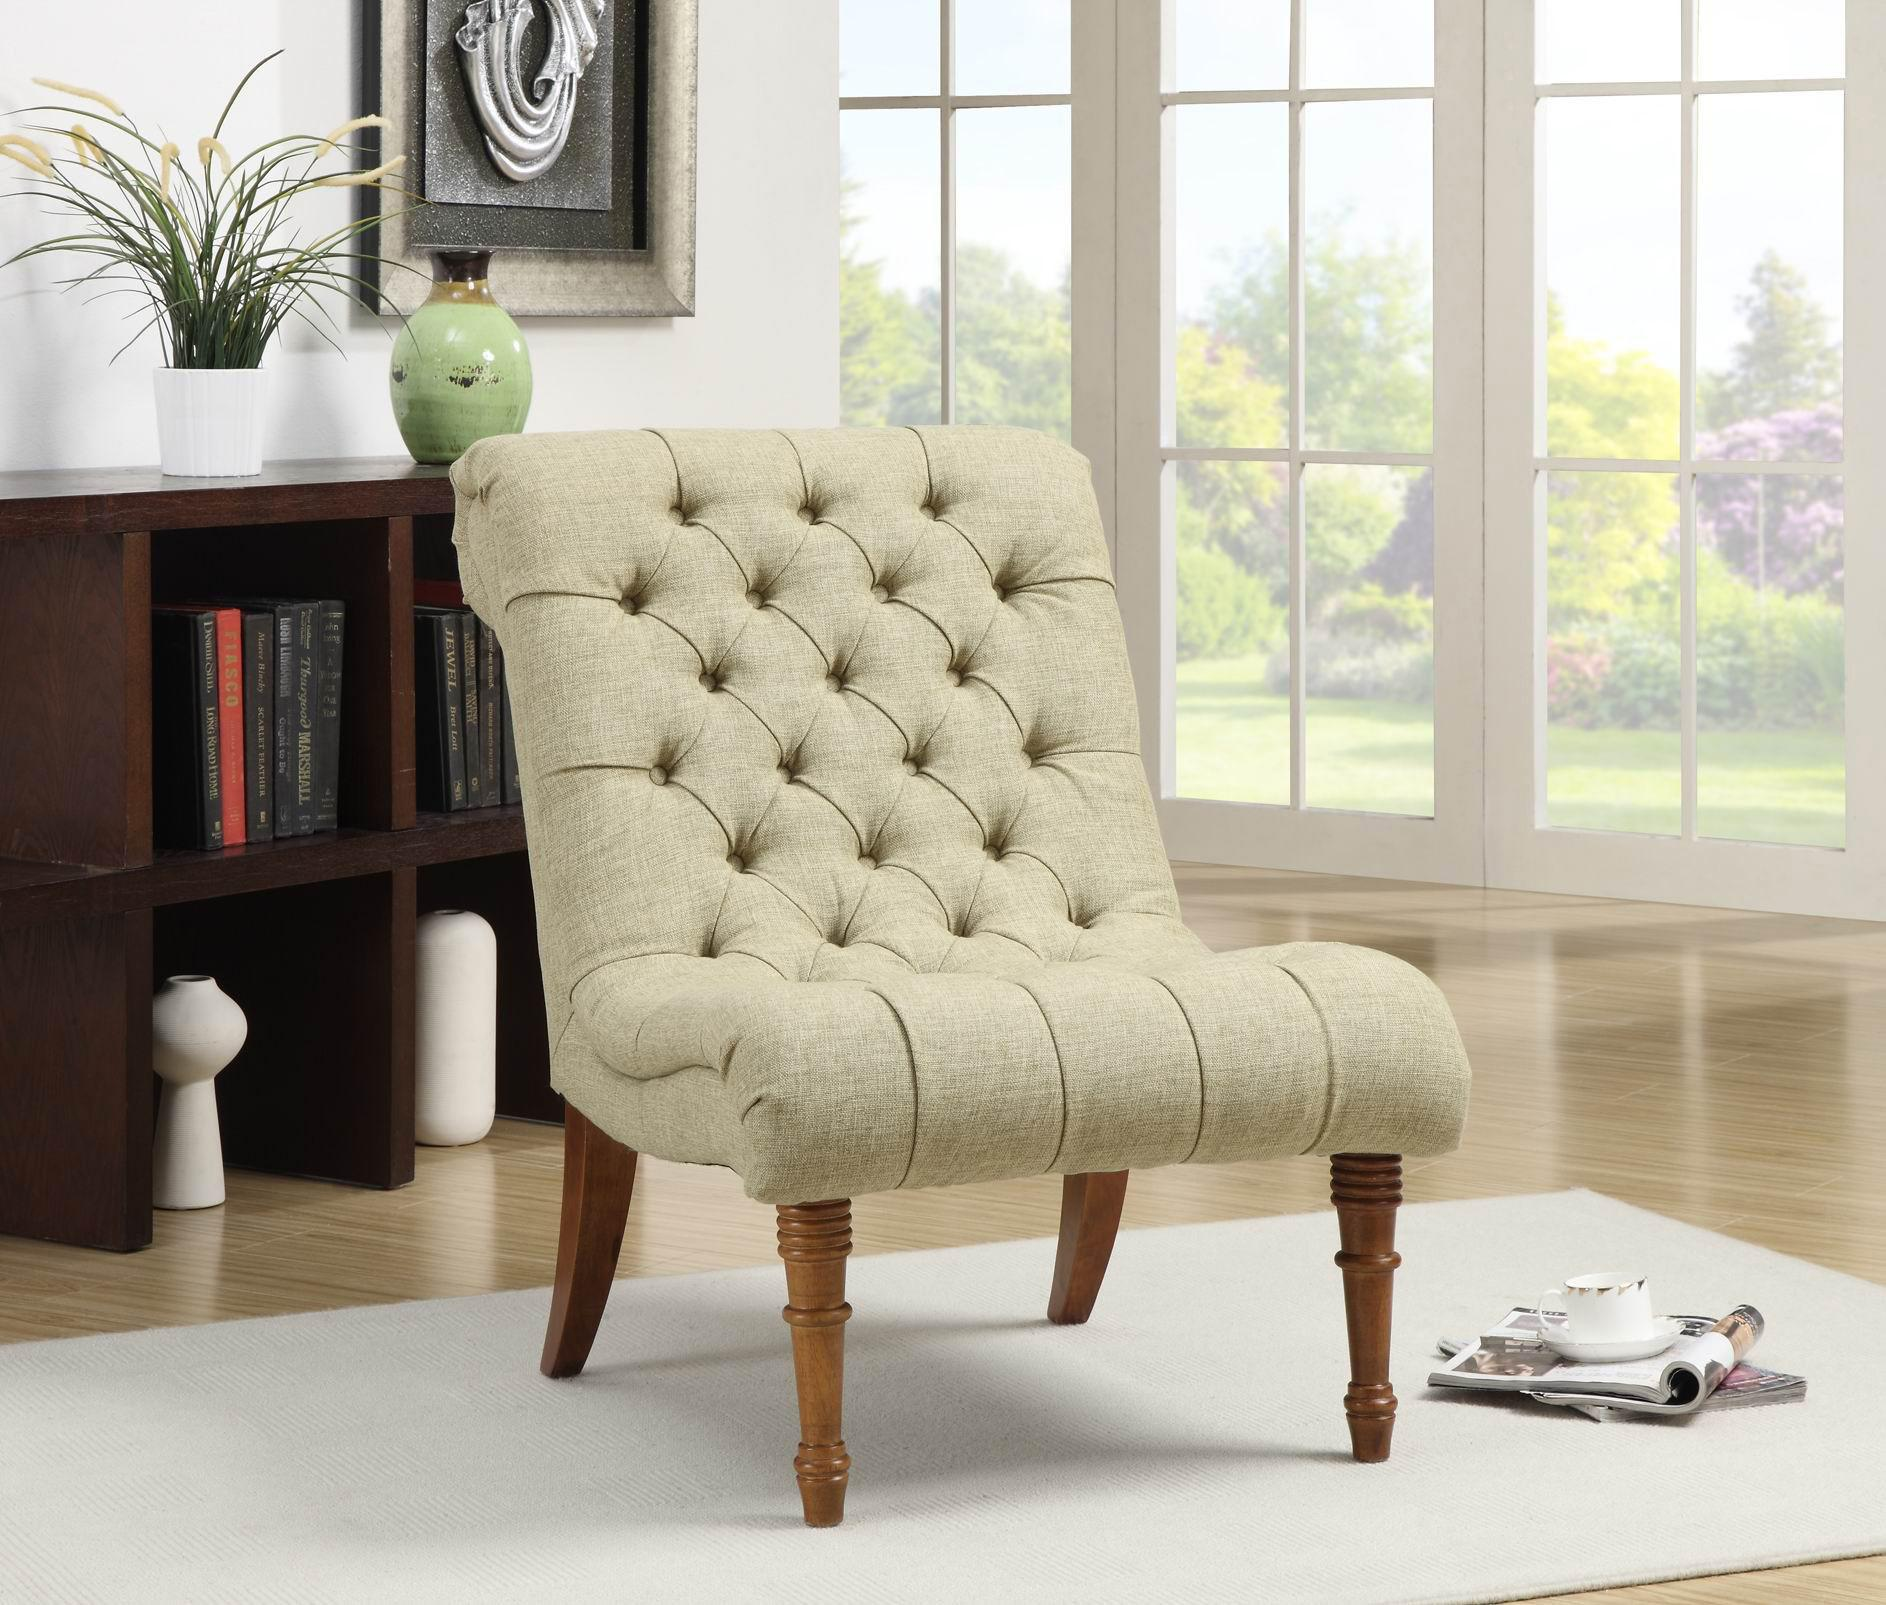 Coaster Accent Seating 902218 Tufted Accent Chair Without